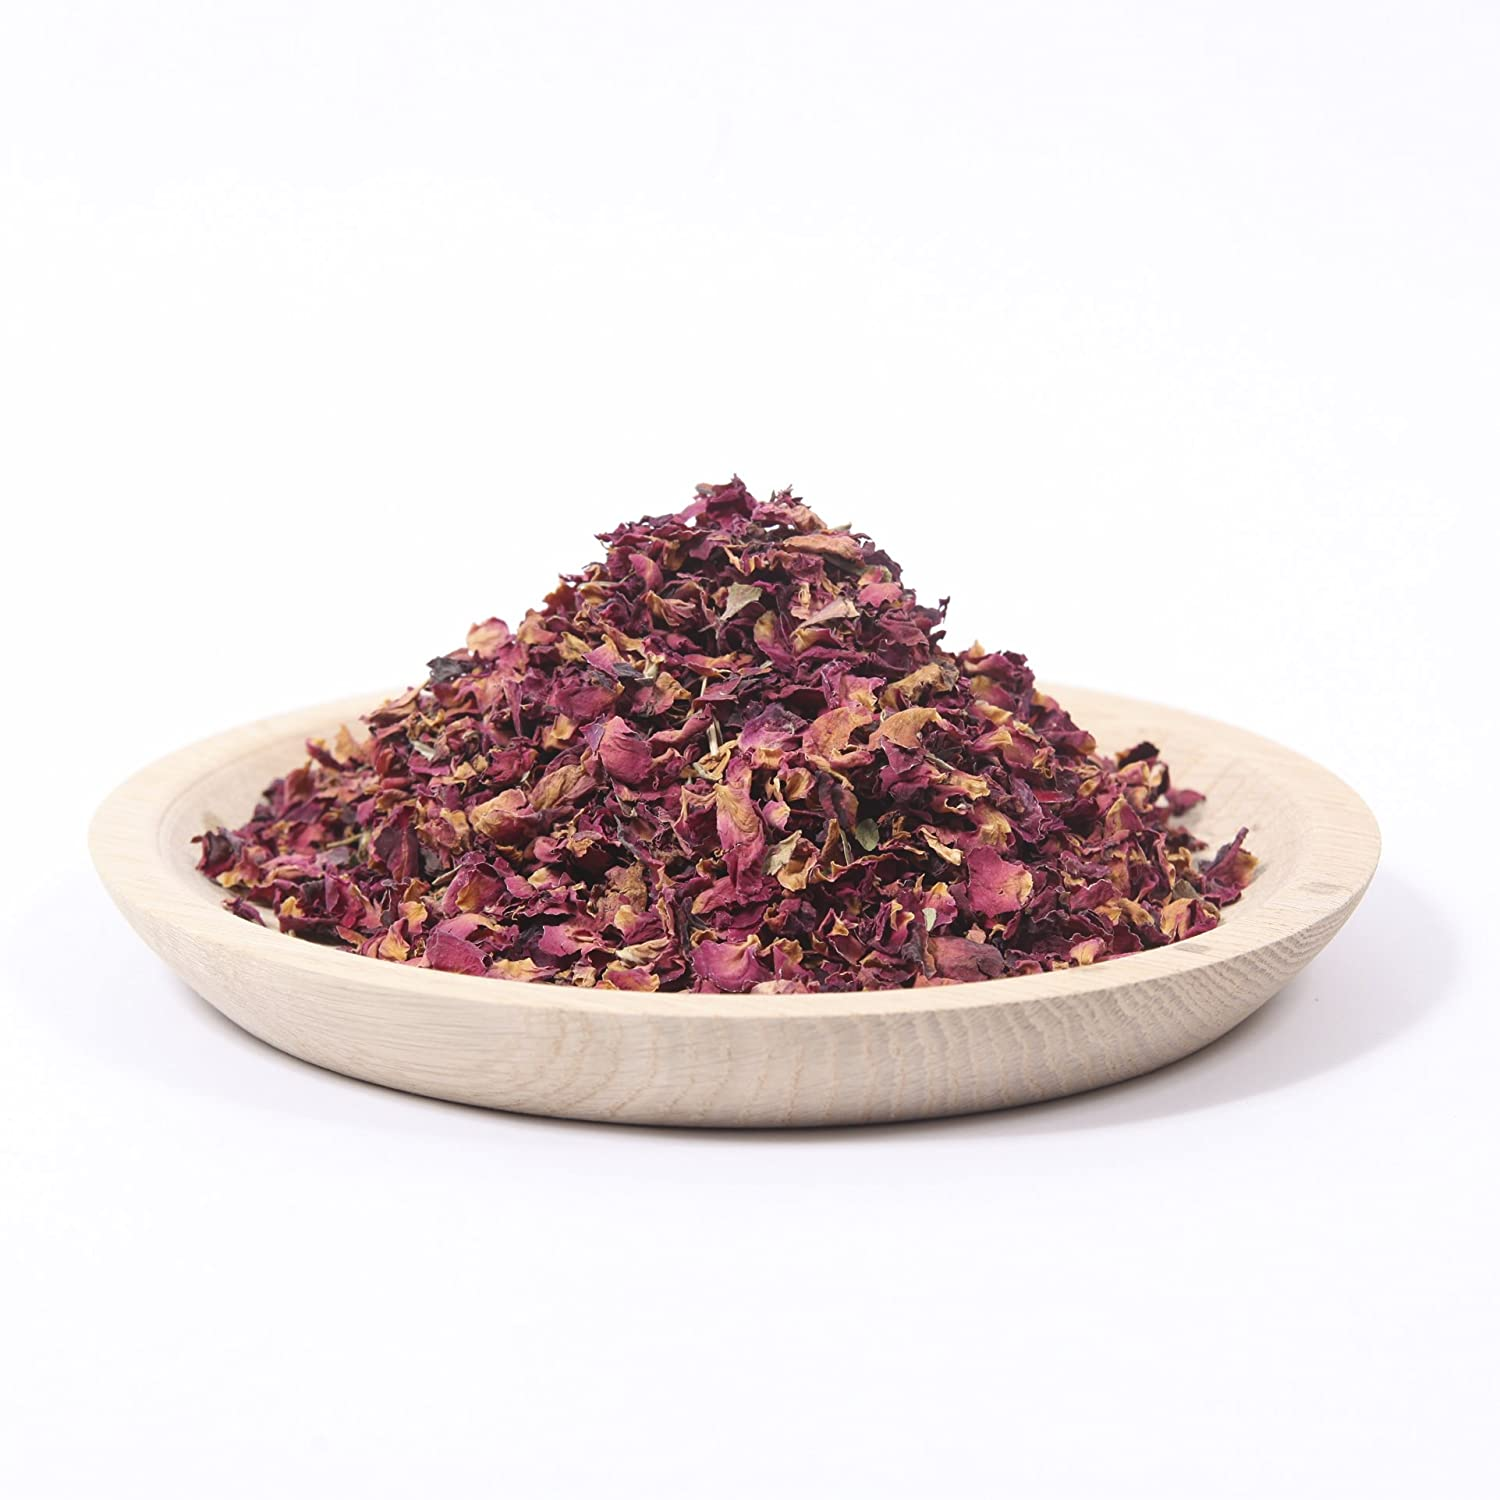 Dried Rose Petals - 100g Mystic Moments DRIEDROSE100